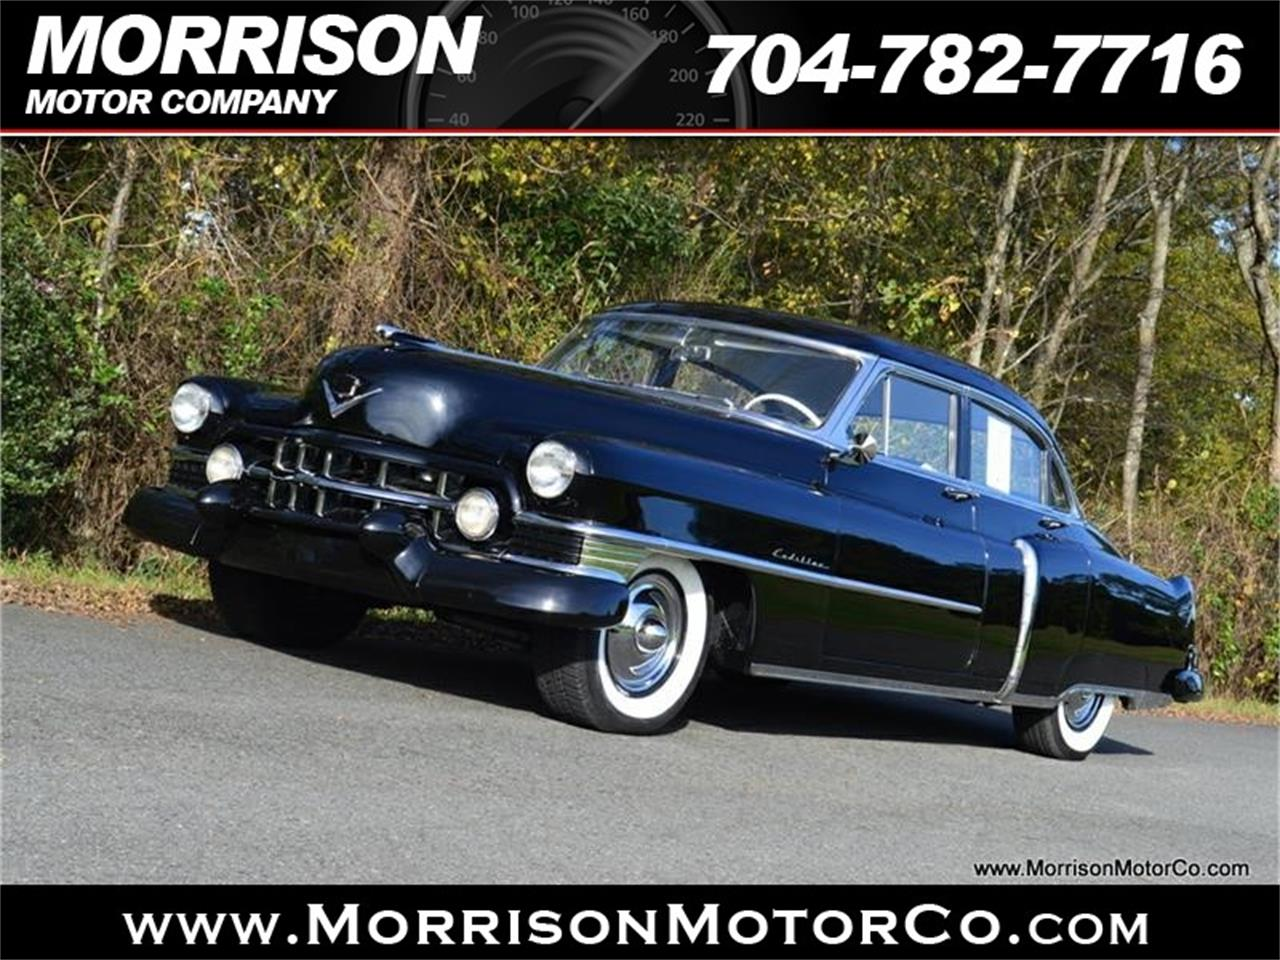 Large Picture of Classic '51 Cadillac DeVille located in Concord North Carolina - $19,900.00 - MBTG